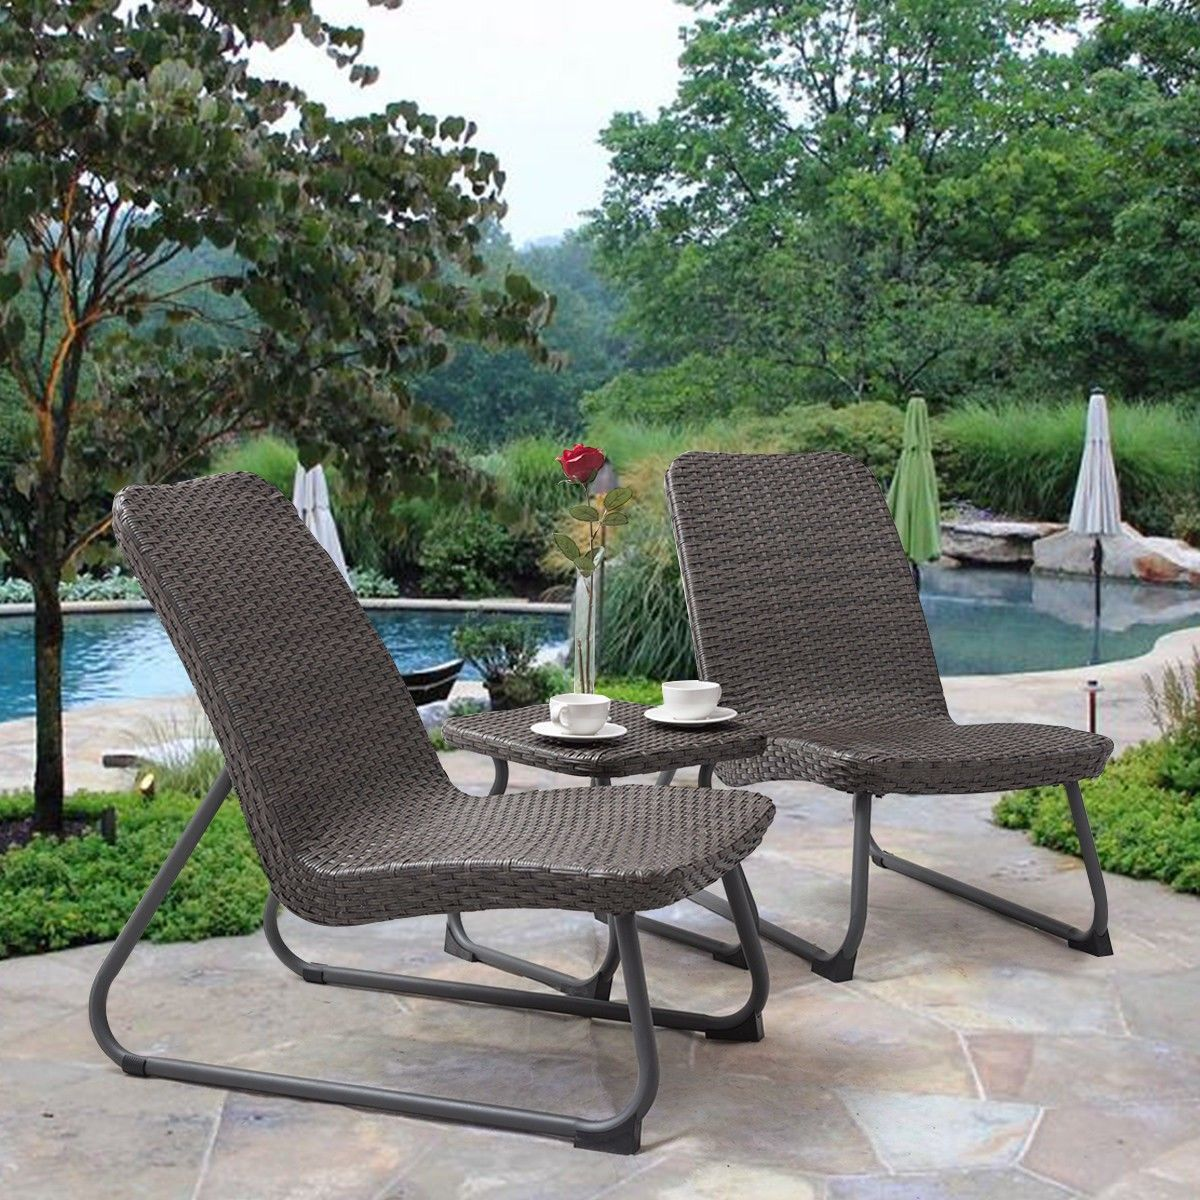 3 Pcs Outdoor All Weather Rattan Conversation Chair Table Set